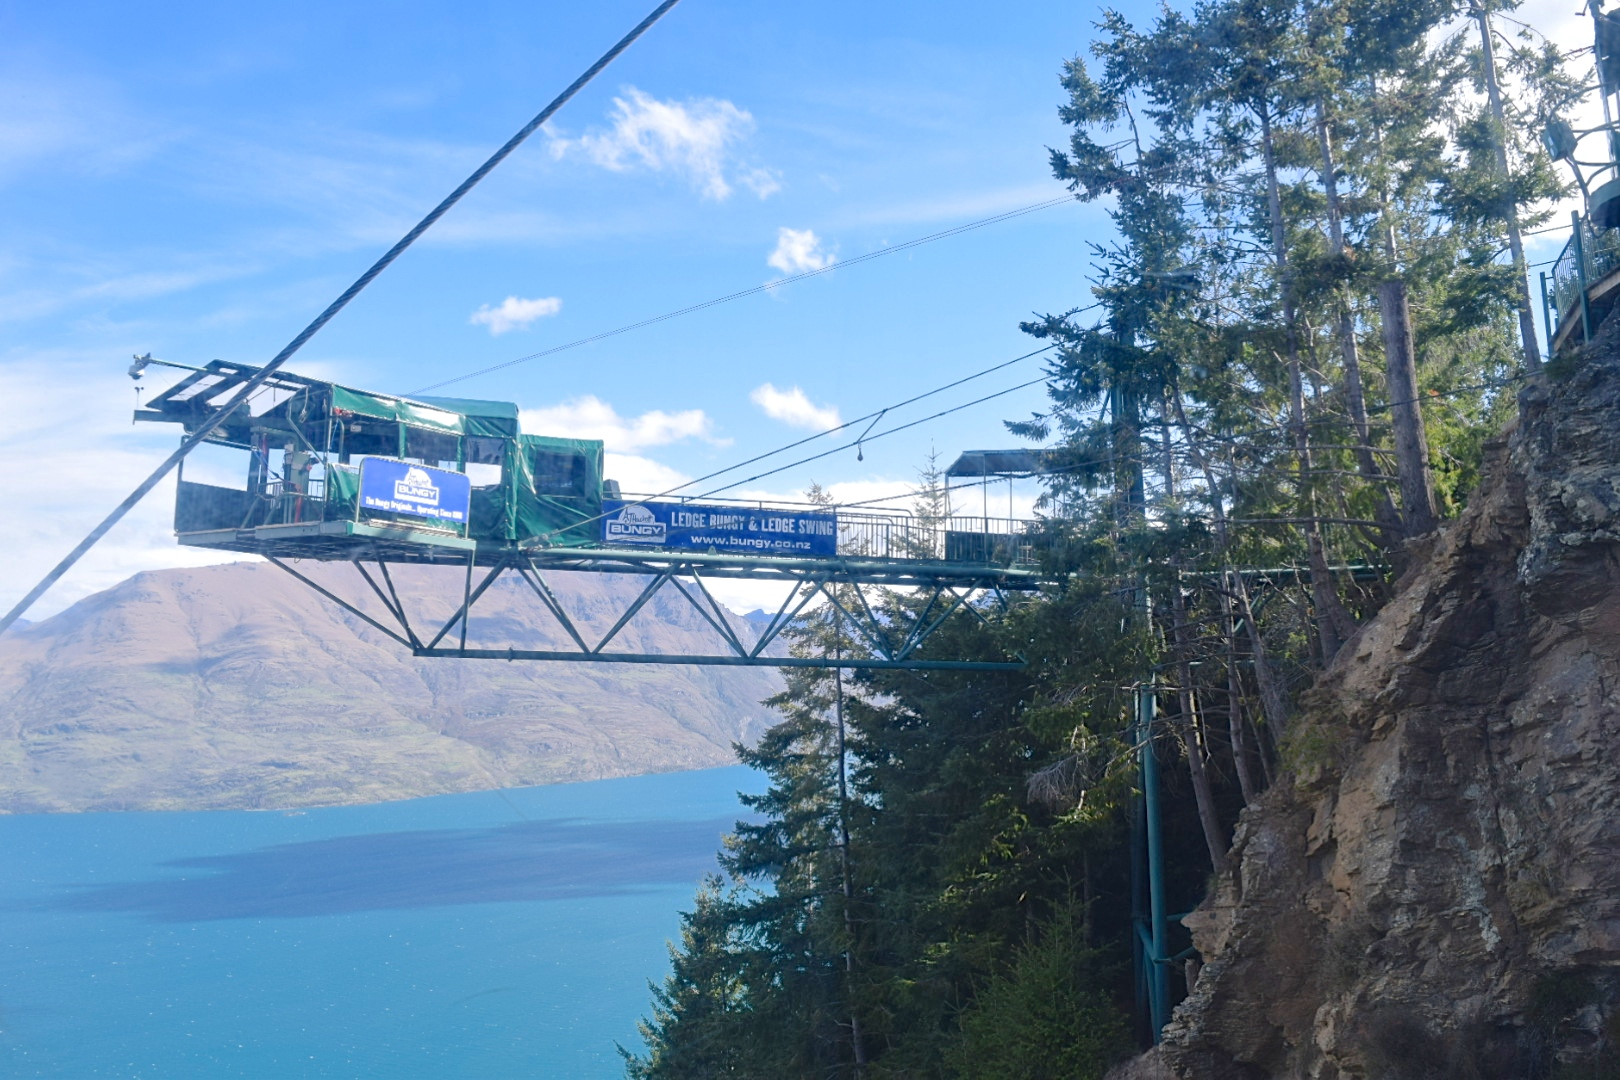 Here's one bungy option - great view, but I'm not sure about jumping off a cliff with all those trees under me.